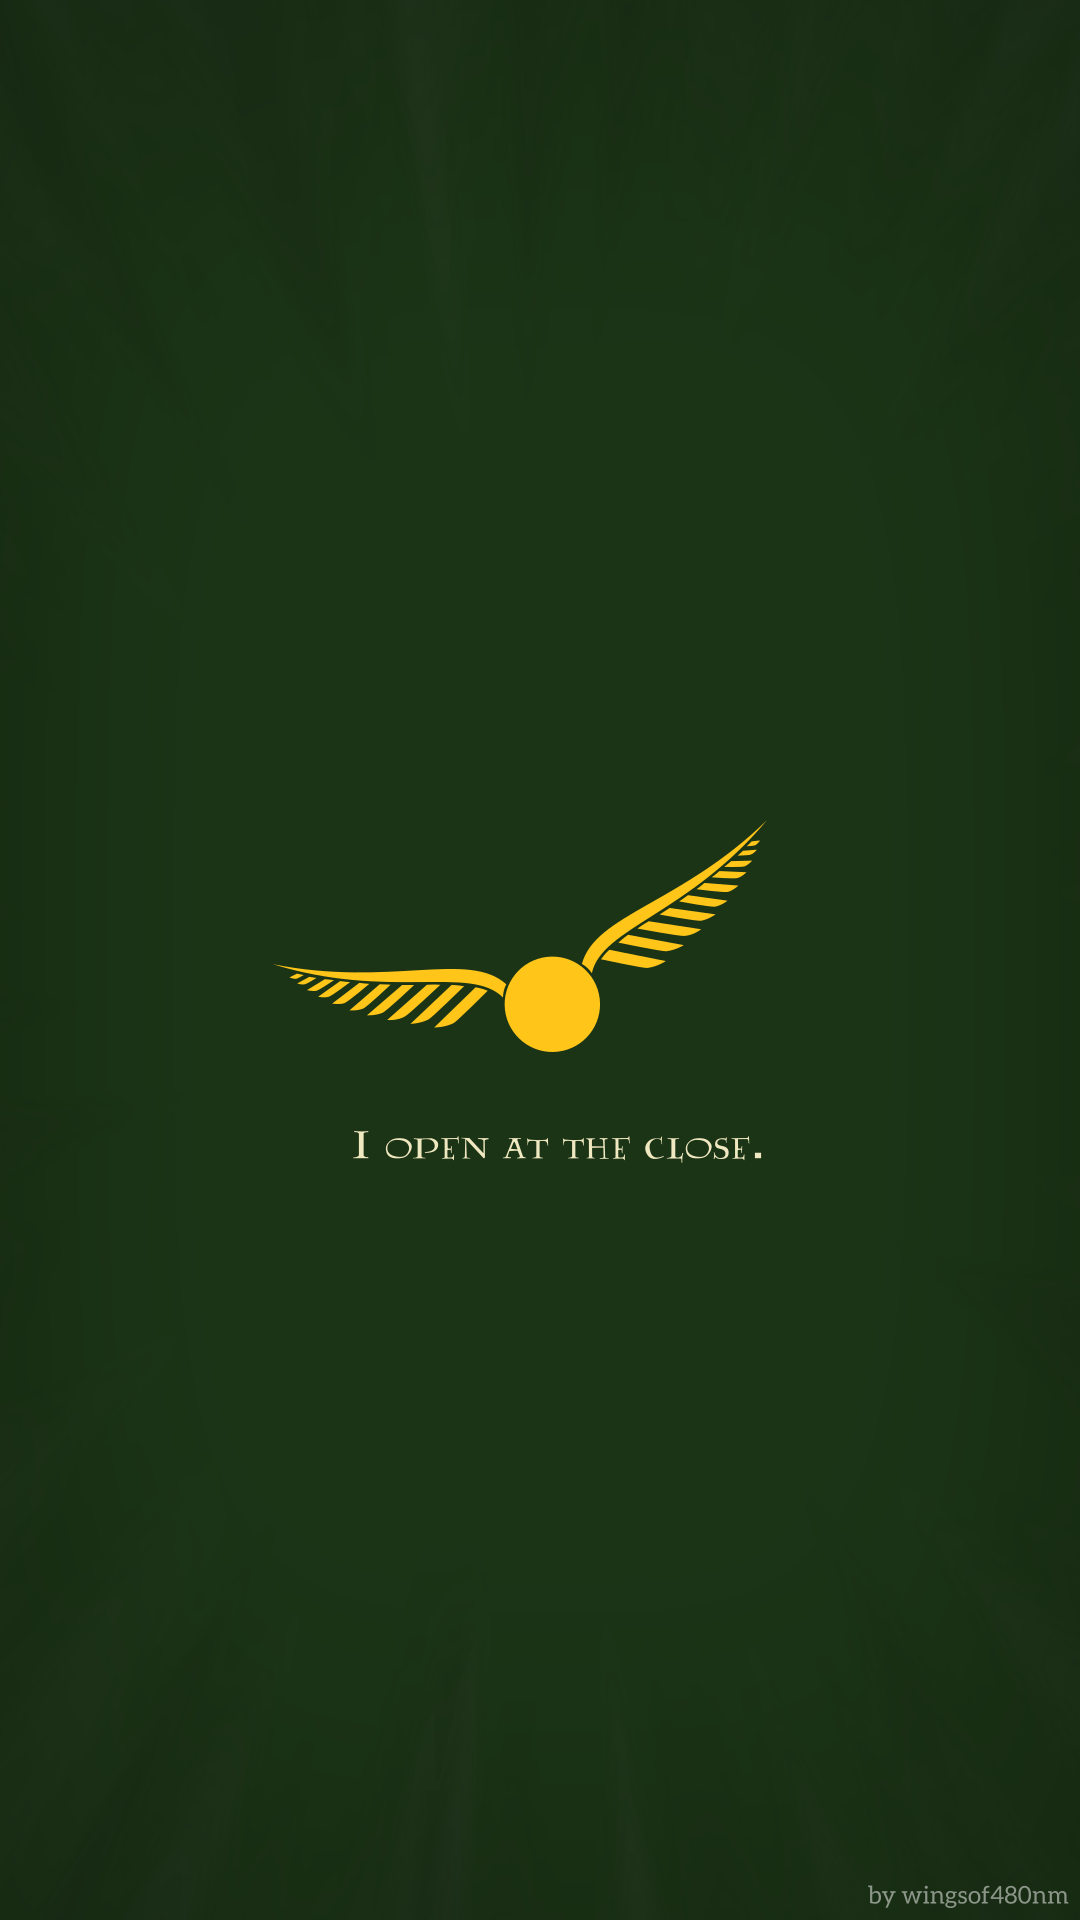 Harry Potter Minimalist Backgrounds by wingsof480nm on ...